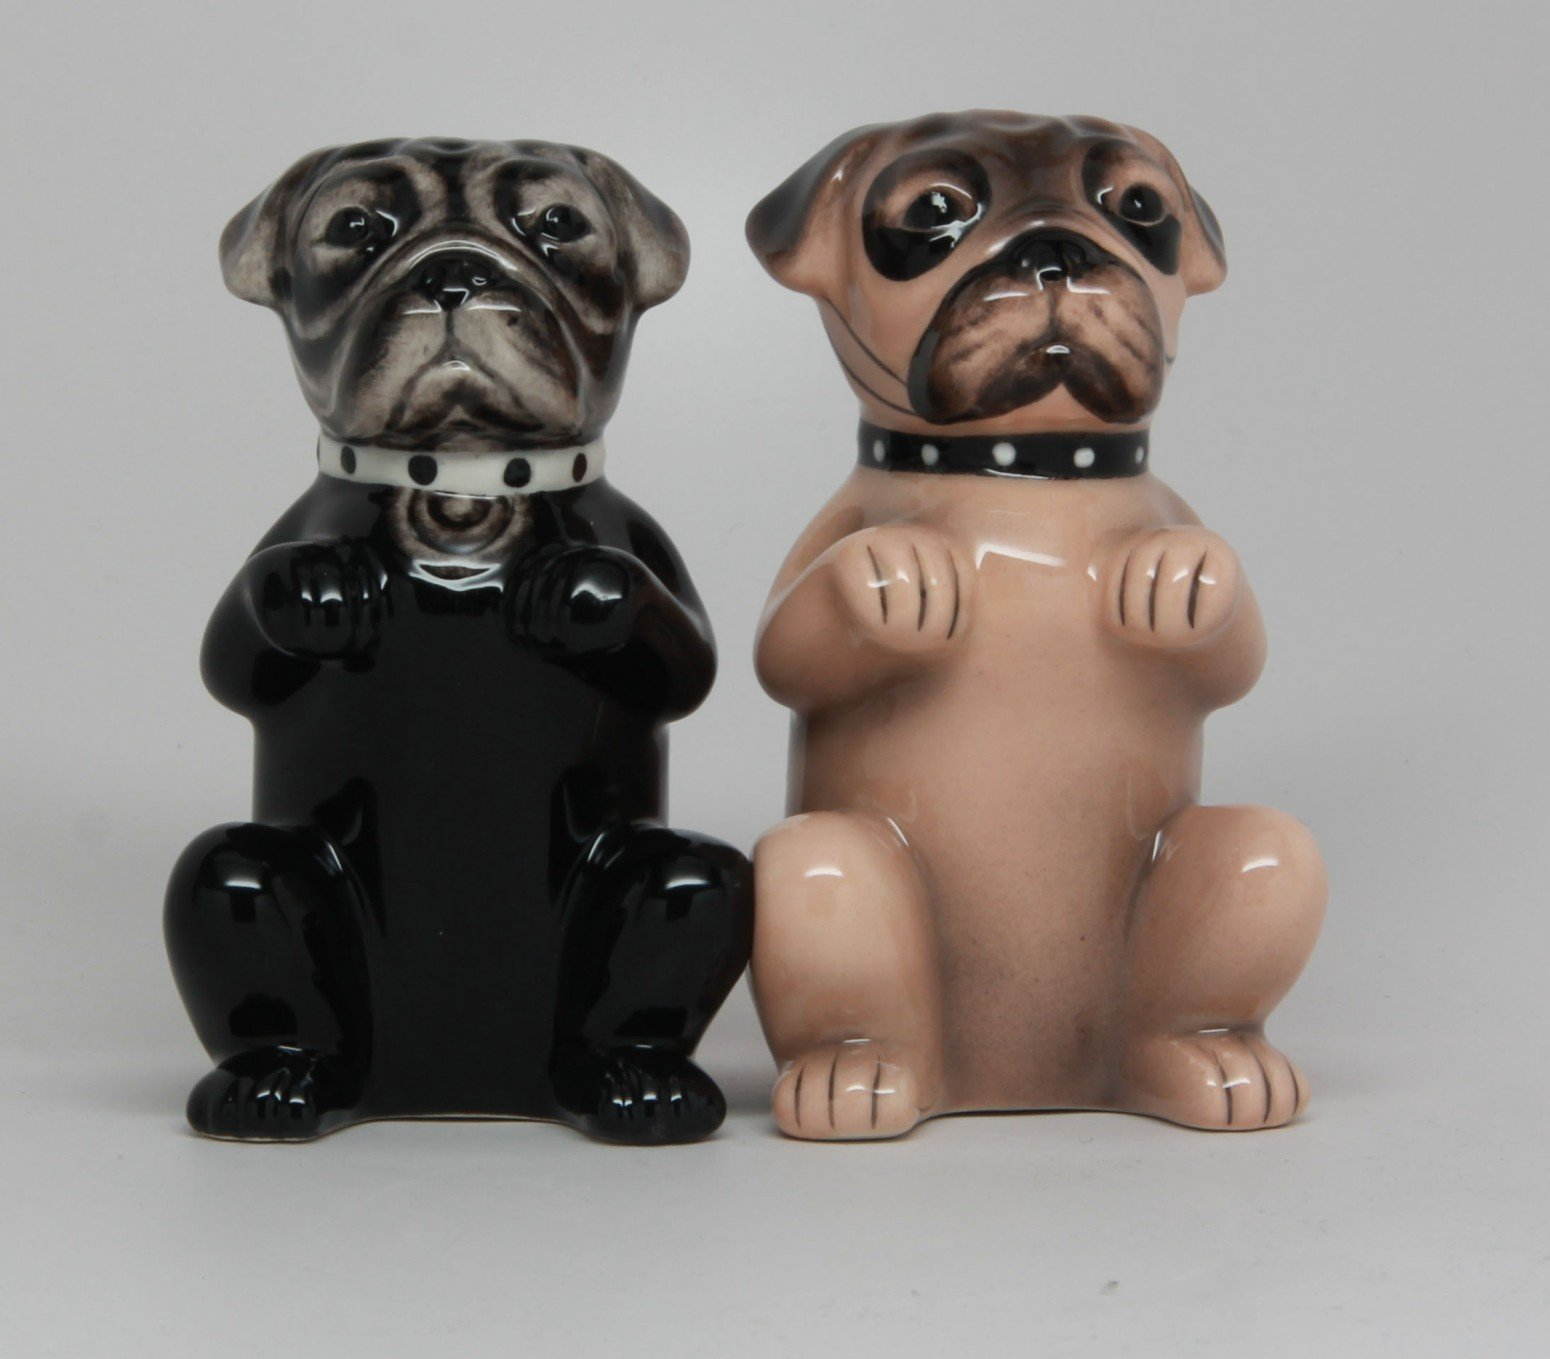 Cute Puppies Pugs Ceramic Magnetic Salt and Pepper Shakers Home Kitchen Decor